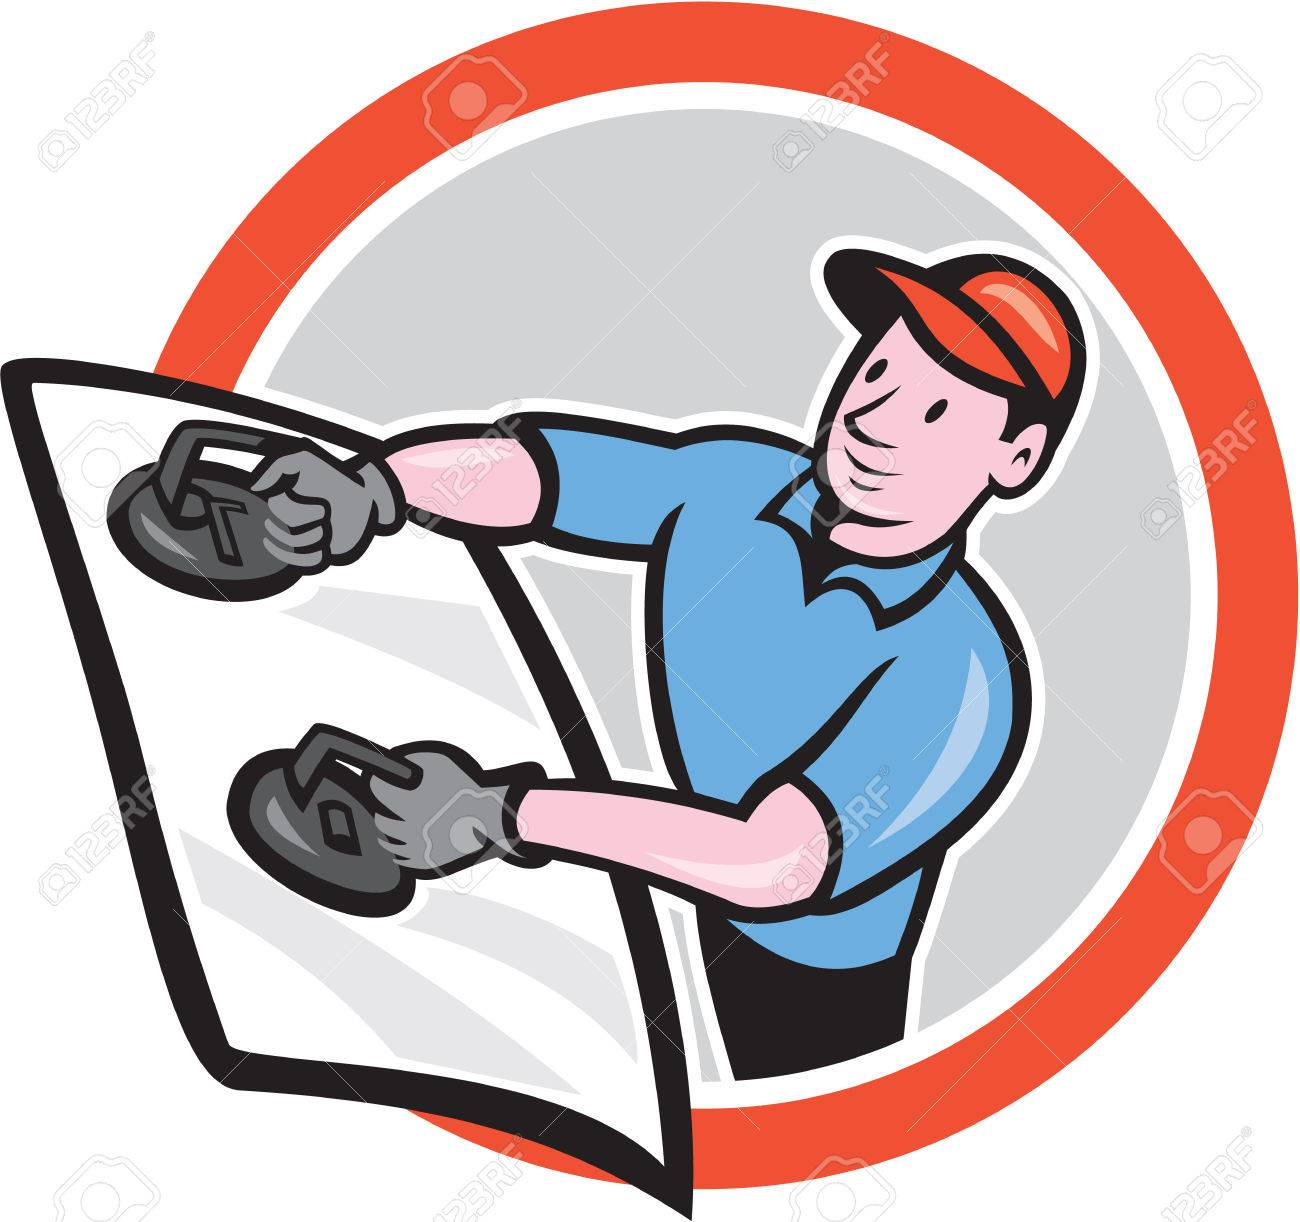 Illustration of automotive glass installer carrying windshield viewed from front set inside circle on isolated background done in cartoon style. - 29533408